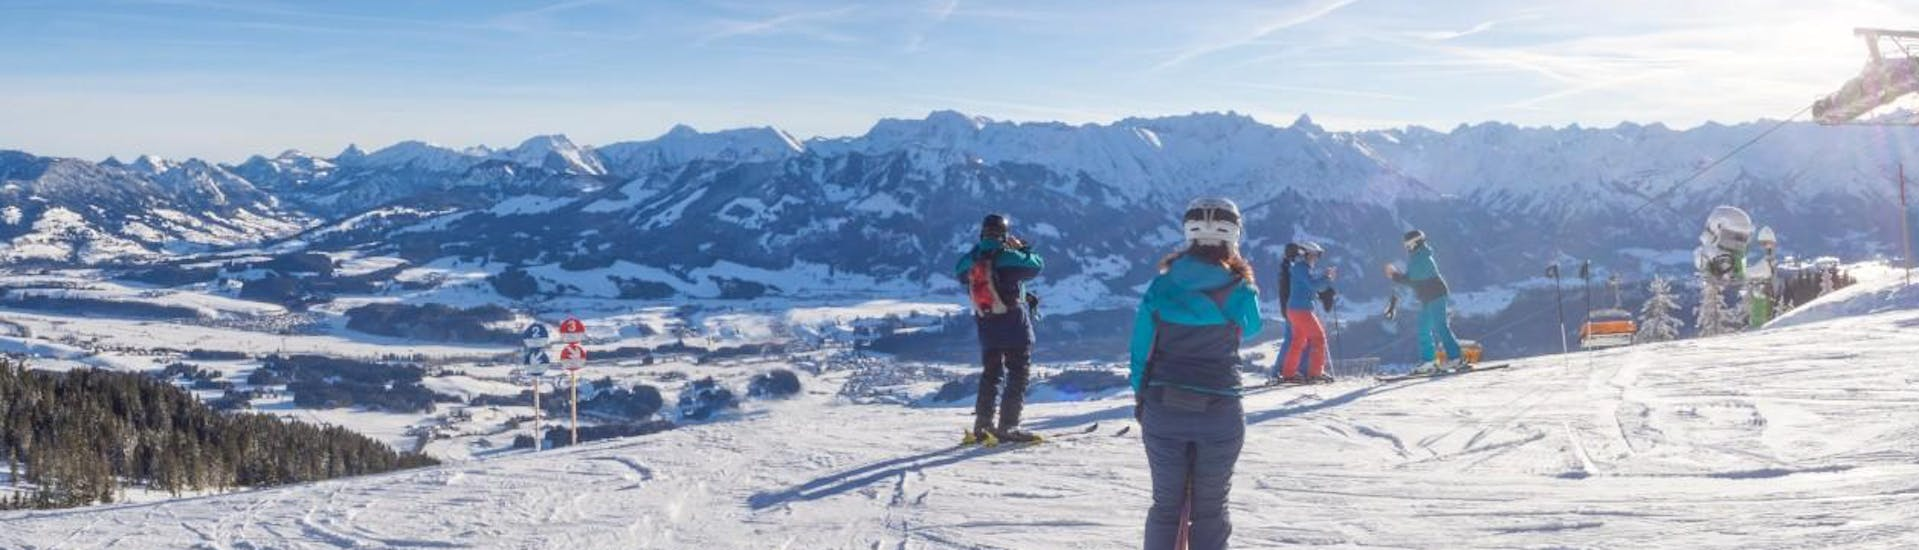 A group of people are at the top of the mountain looking out over the Bavarian ski resort of Bolsterlang, where local ski schools offer a ski lessons to visitors who want to learn to ski.